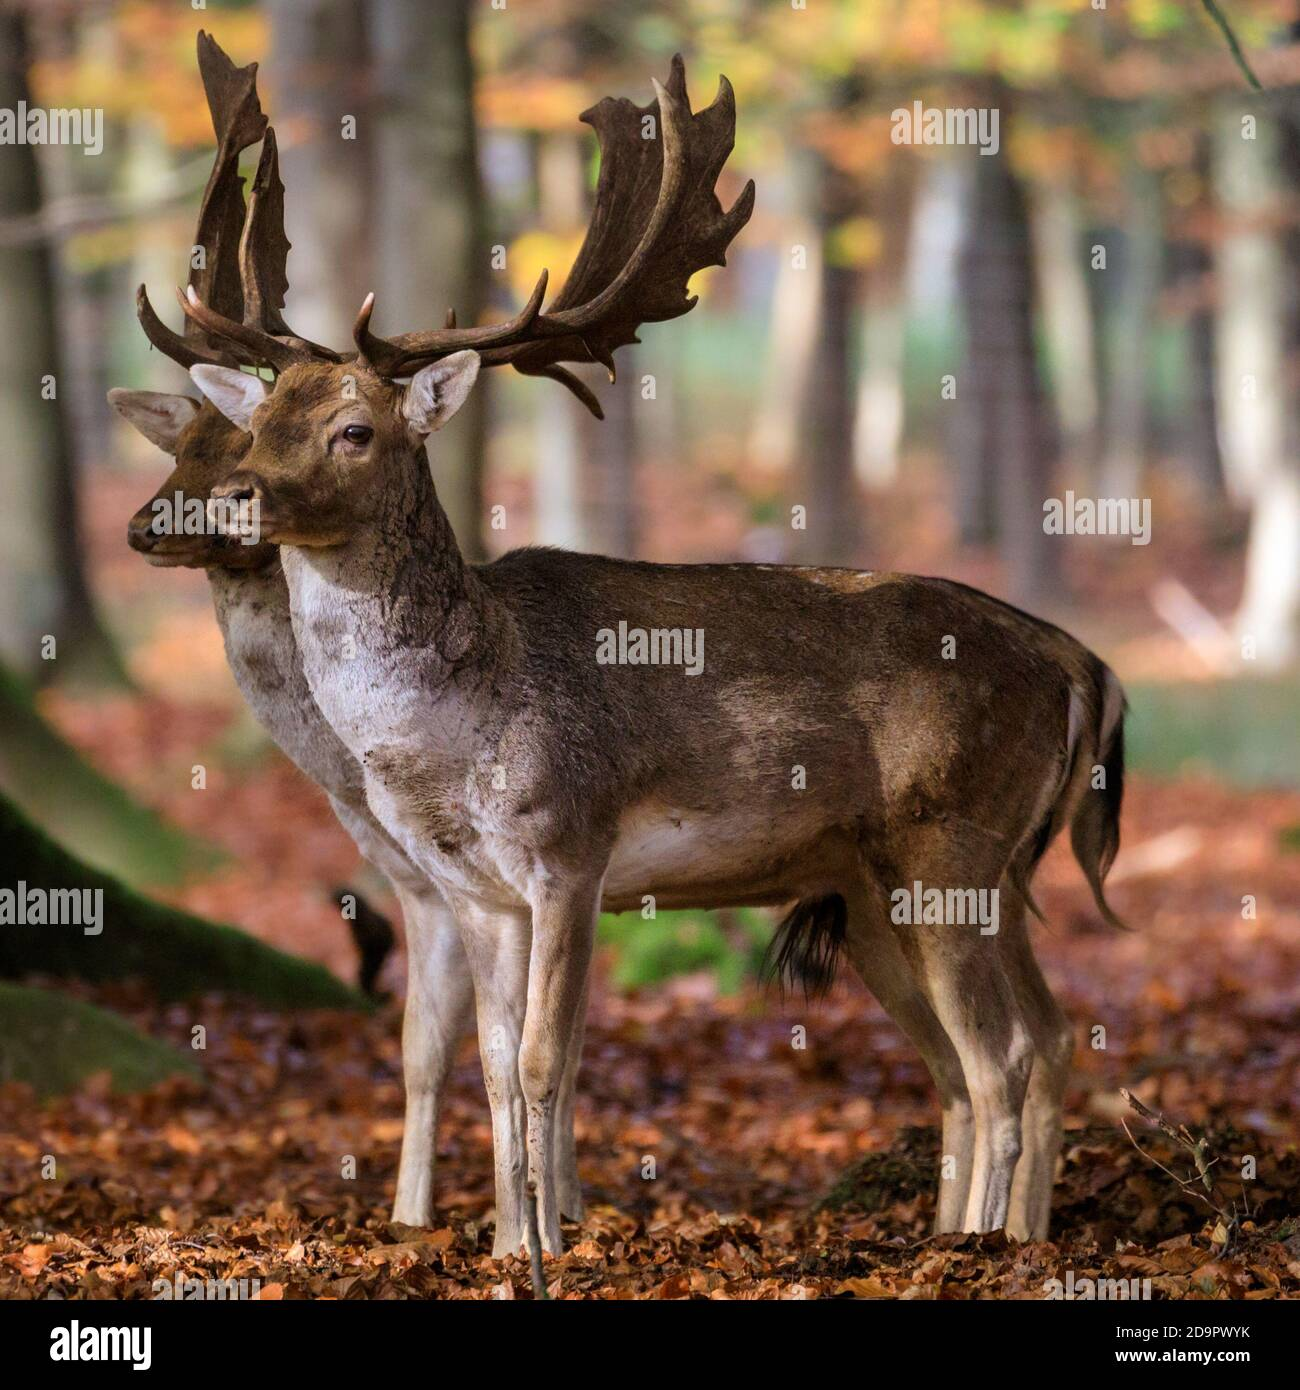 Page 2 In Sync High Resolution Stock Photography And Images Alamy